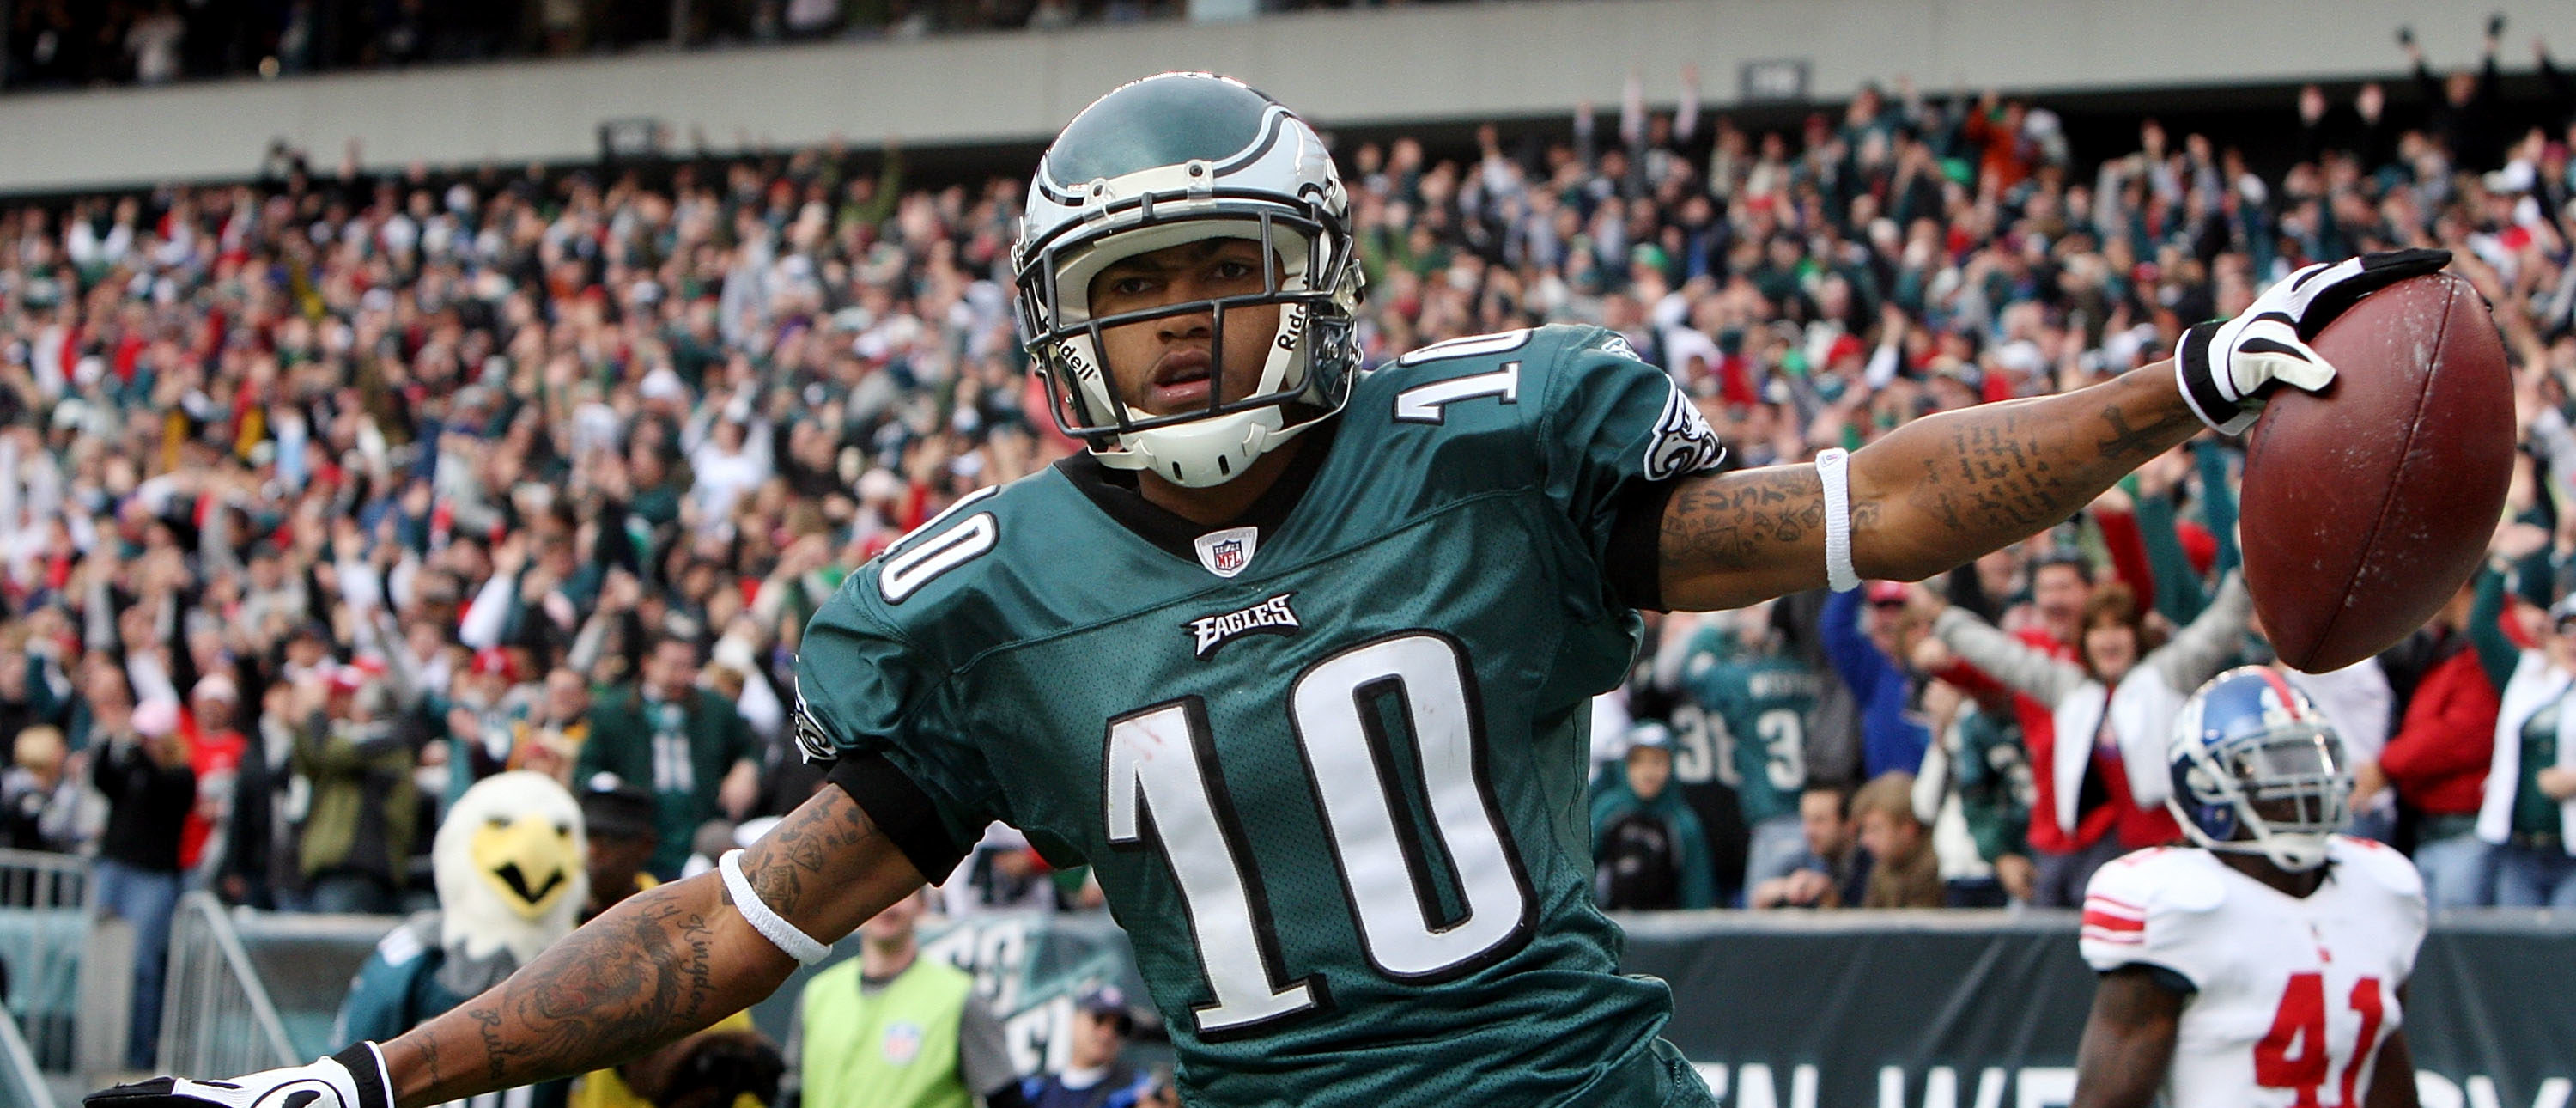 DeSean Jackson #10 of the Philadelphia Eagles celebrates his second quarter touchdown against the New York Giants on November 1, 2009 at Lincoln Financial Field in Philadelphia, Pennsylvania. (Photo by Jim McIsaac/Getty Images)